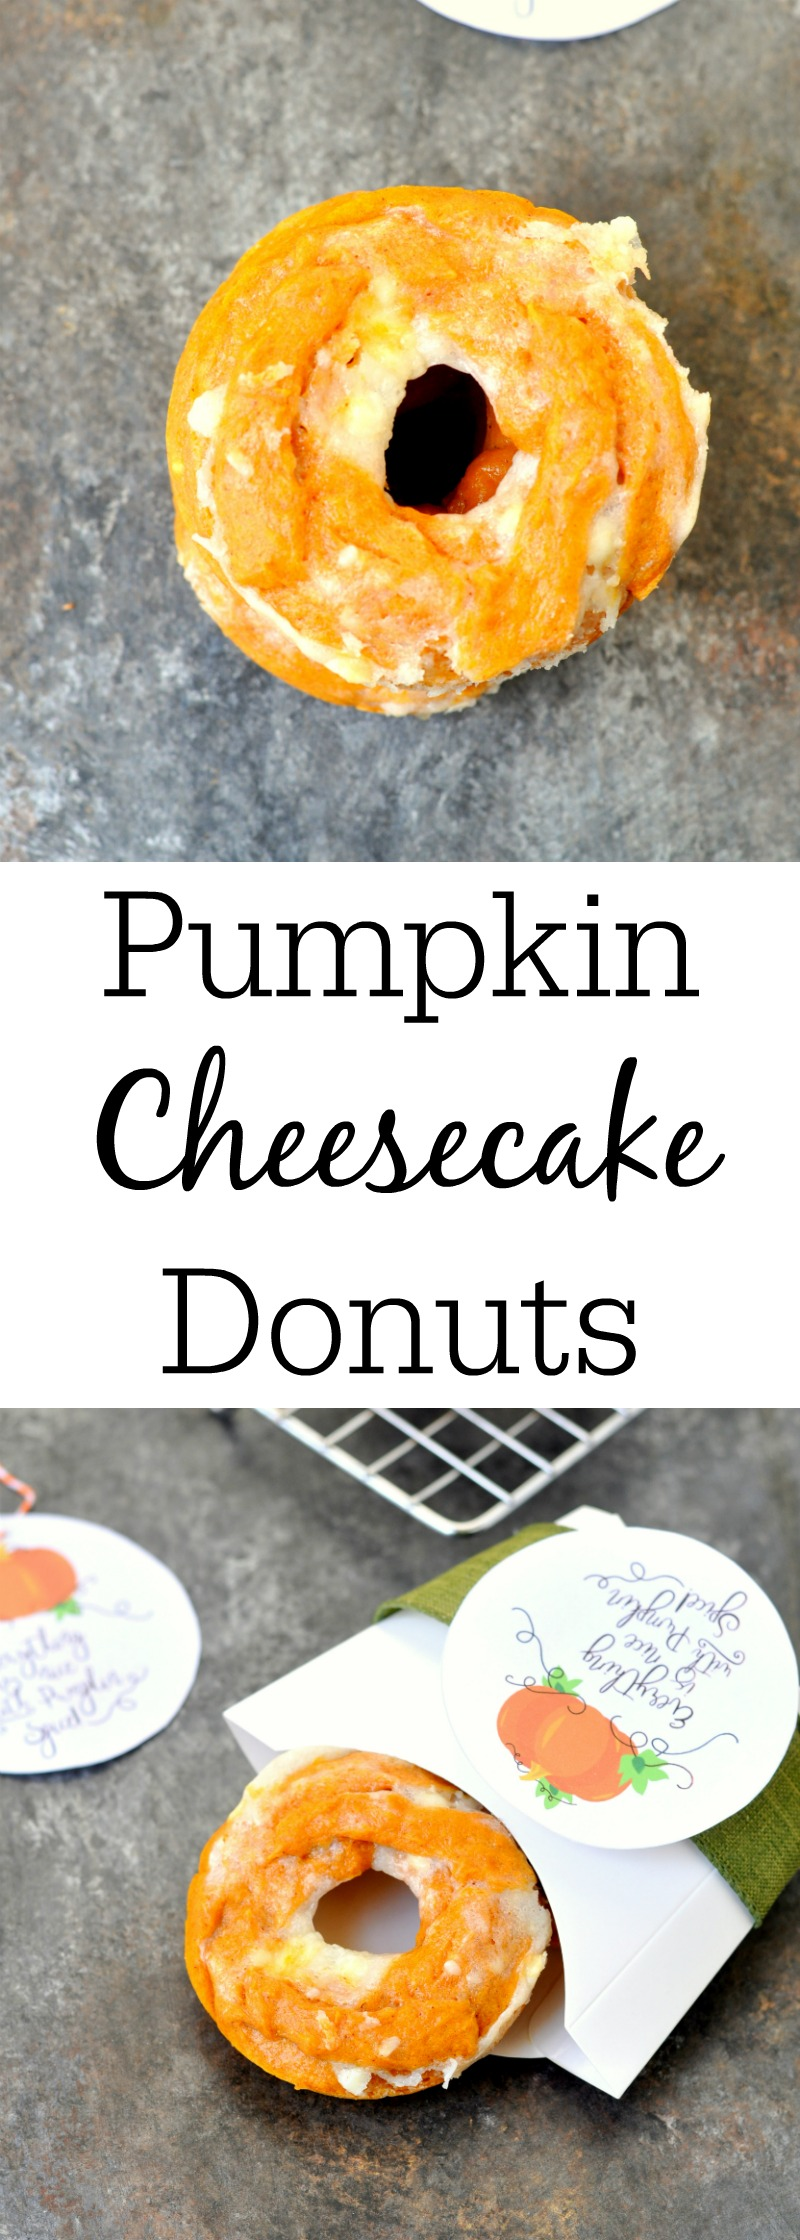 Pumpkin Spice Cheesecake Donuts